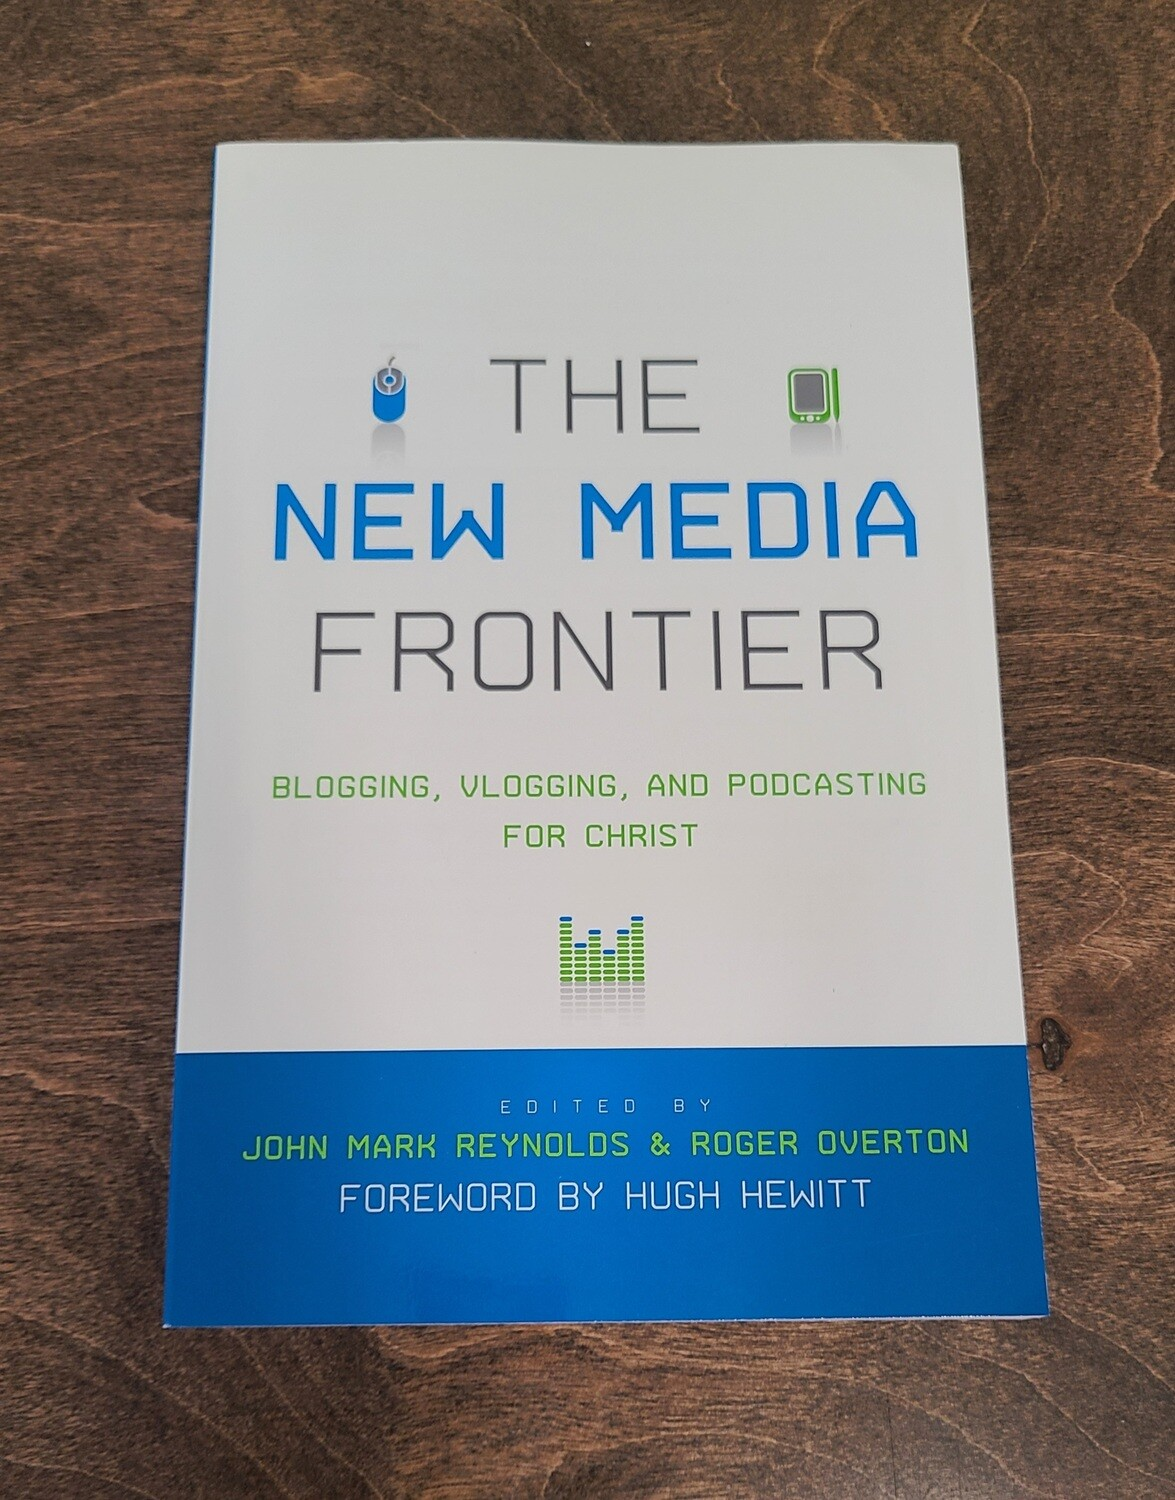 The New media Frontier: Blogging, Vlogging, and Podcasting for Christ by John Mark Reynolds and Roger Overton